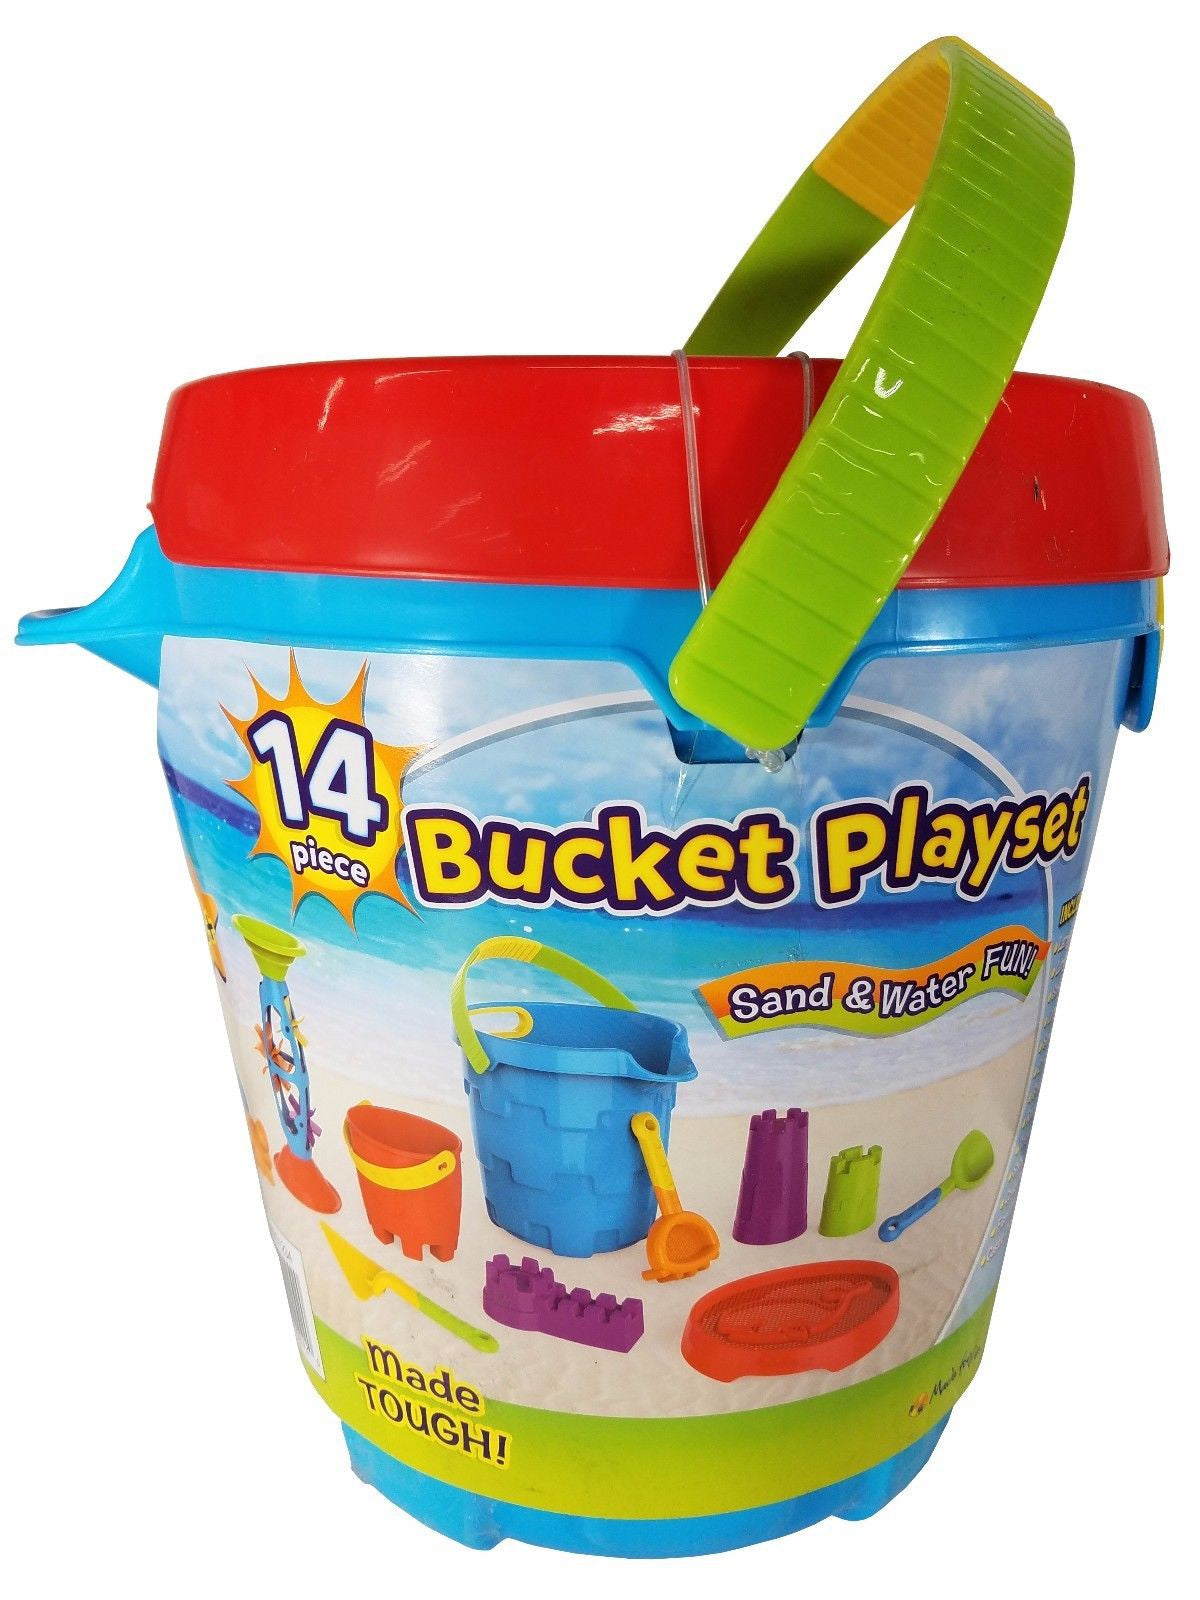 Made for Fun 14 Piece Bucket Playset for Sand and Water Fun - Blue